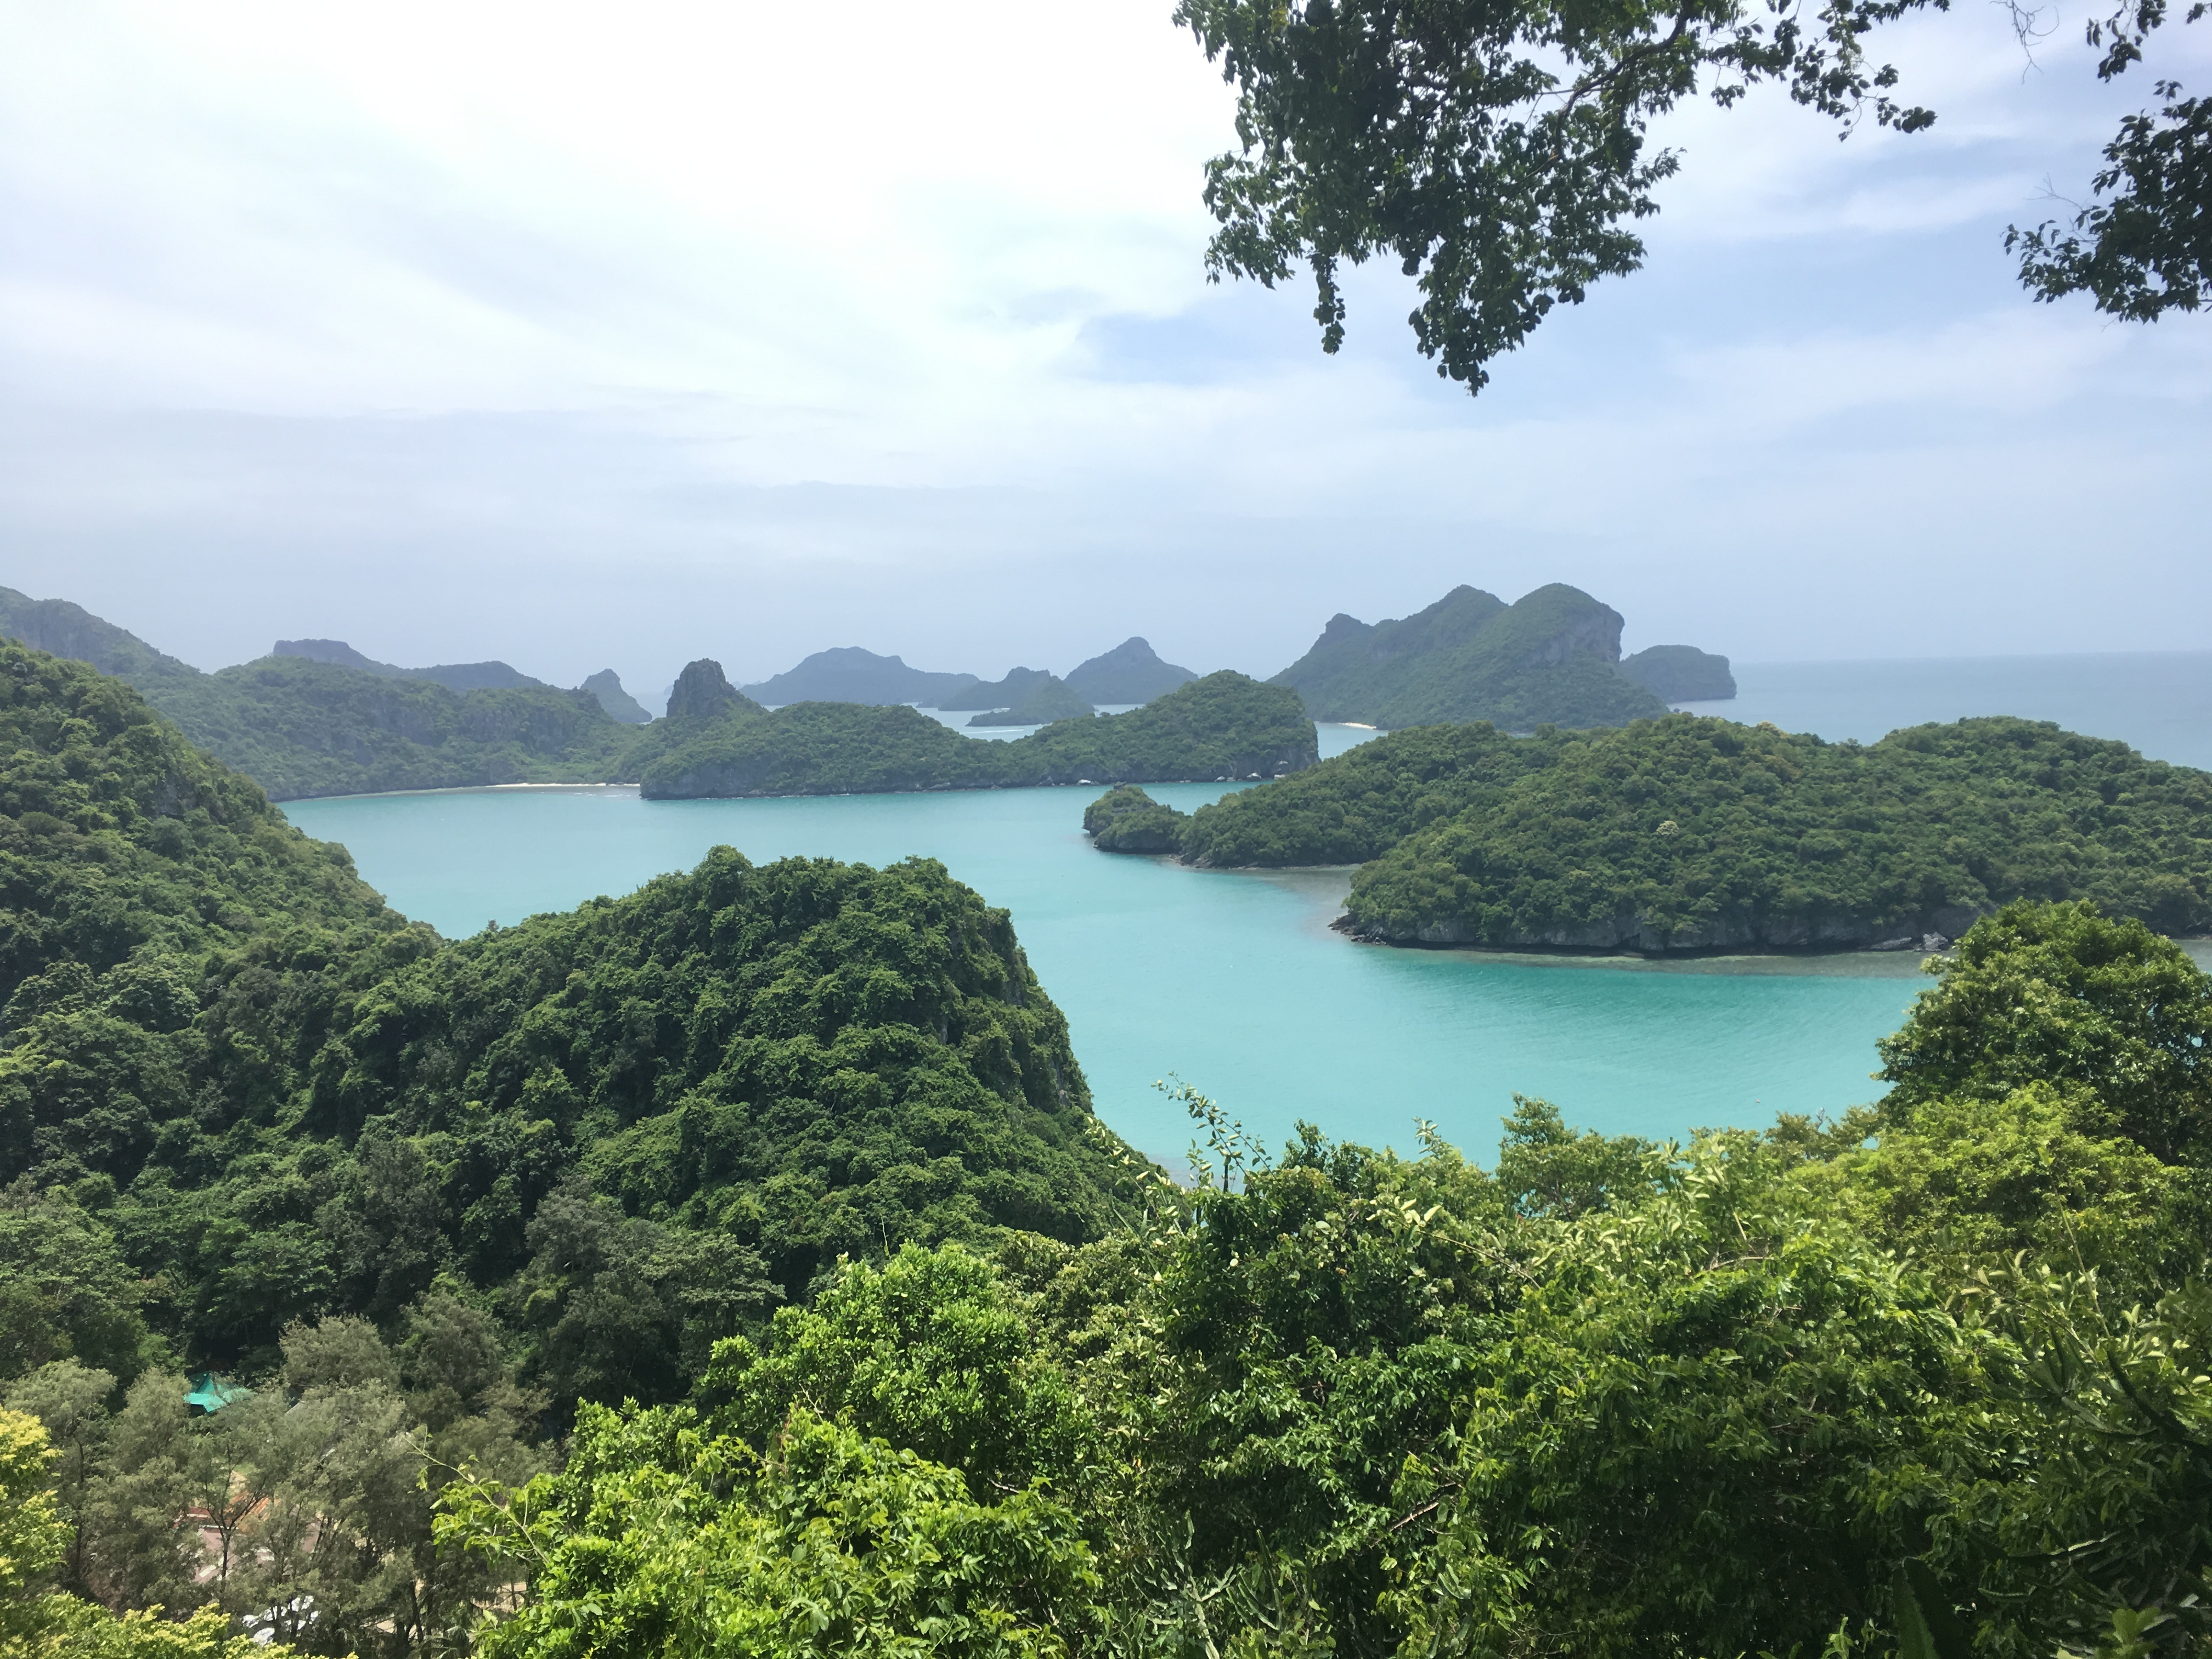 f6919a12e539 Koh Samui 4 Days Itinerary - Things to do + Where to Stay and Play - Every  Steph